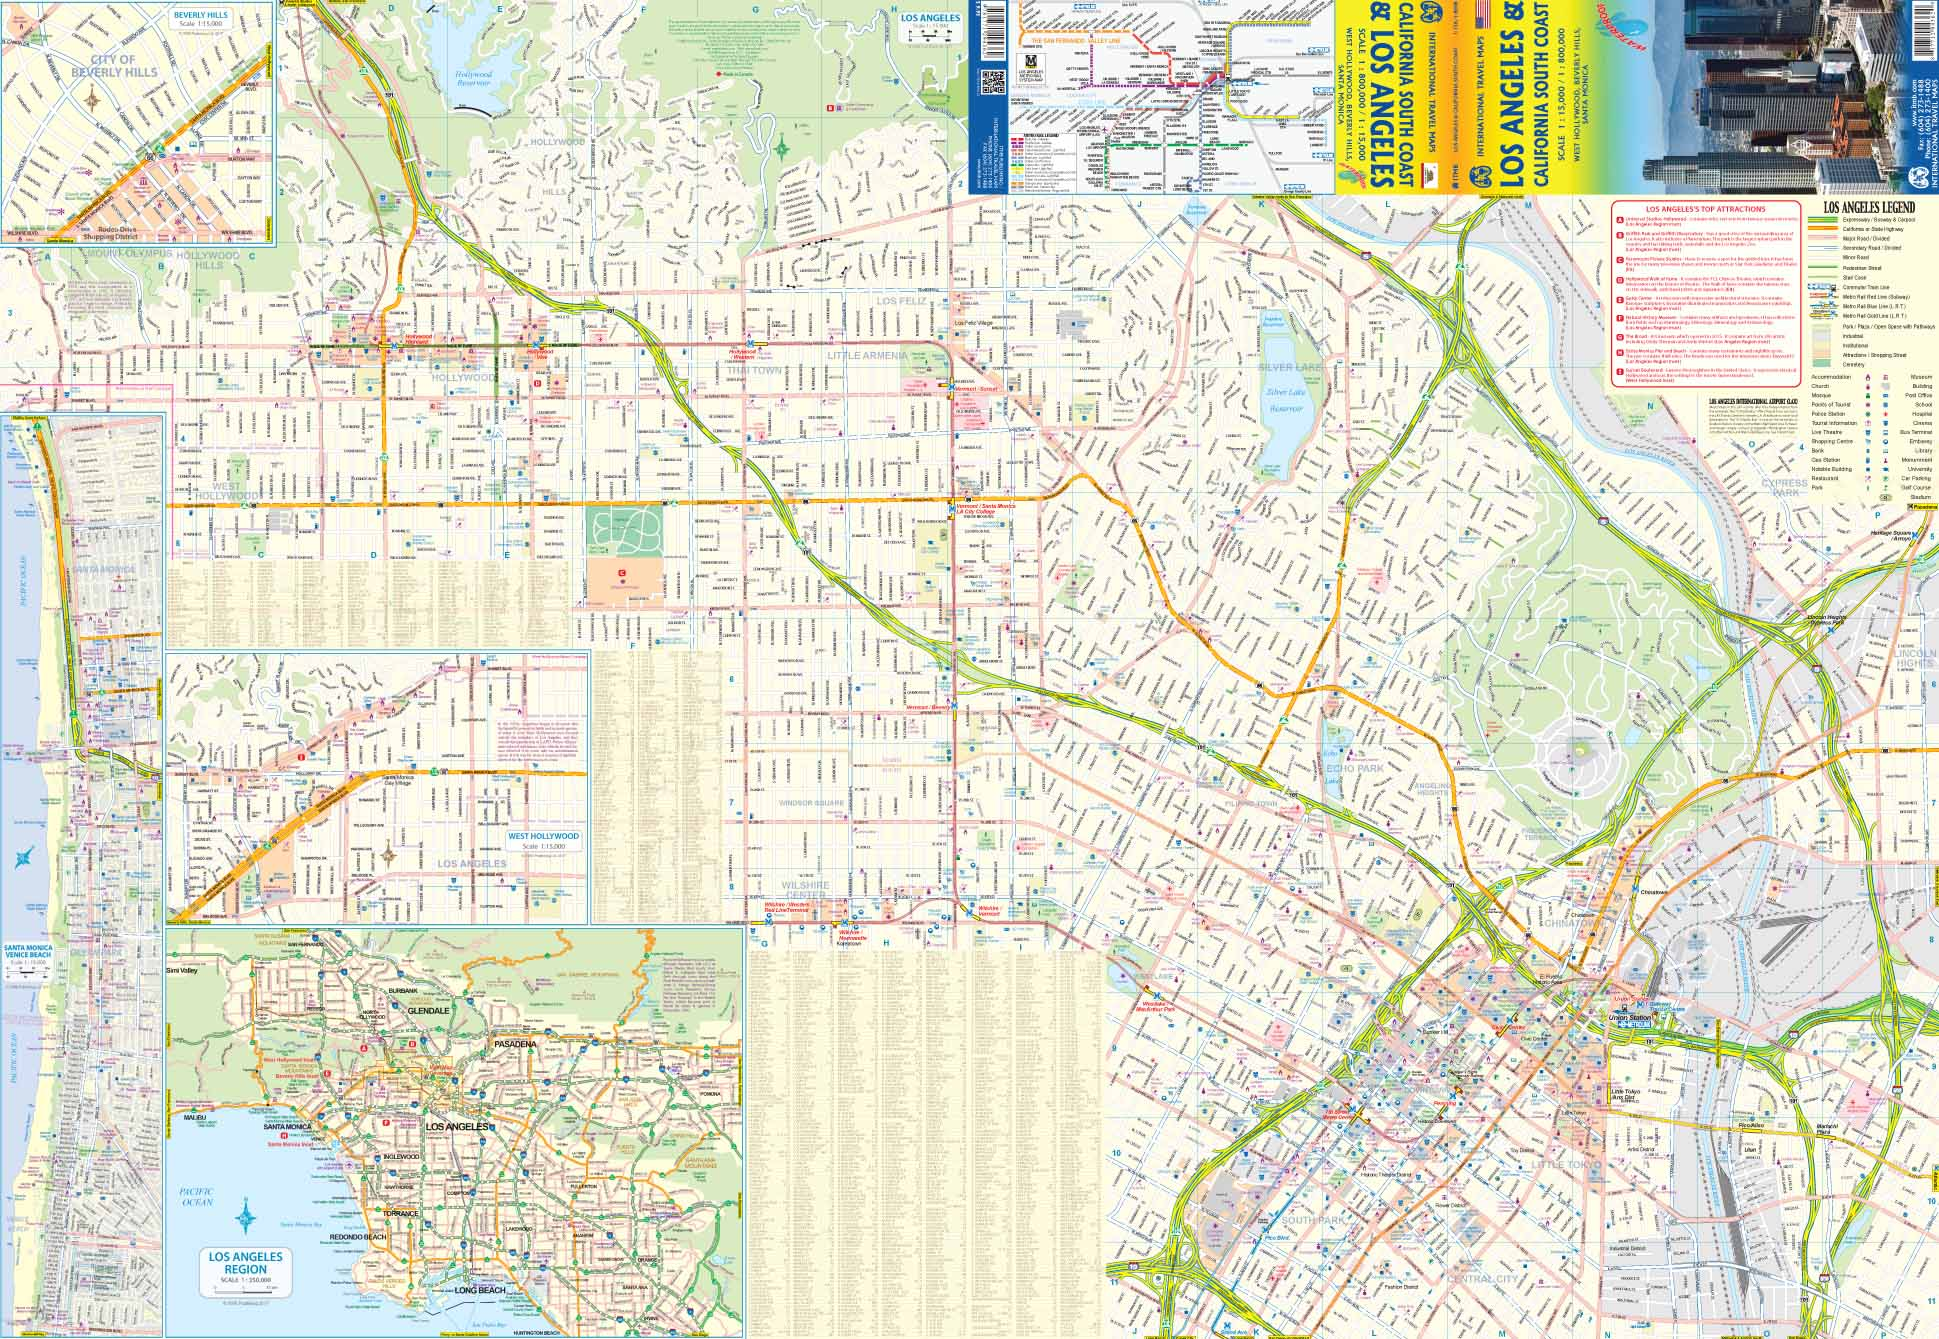 Los Angeles California South Road Map At 1 15 1 800 000 Itmb